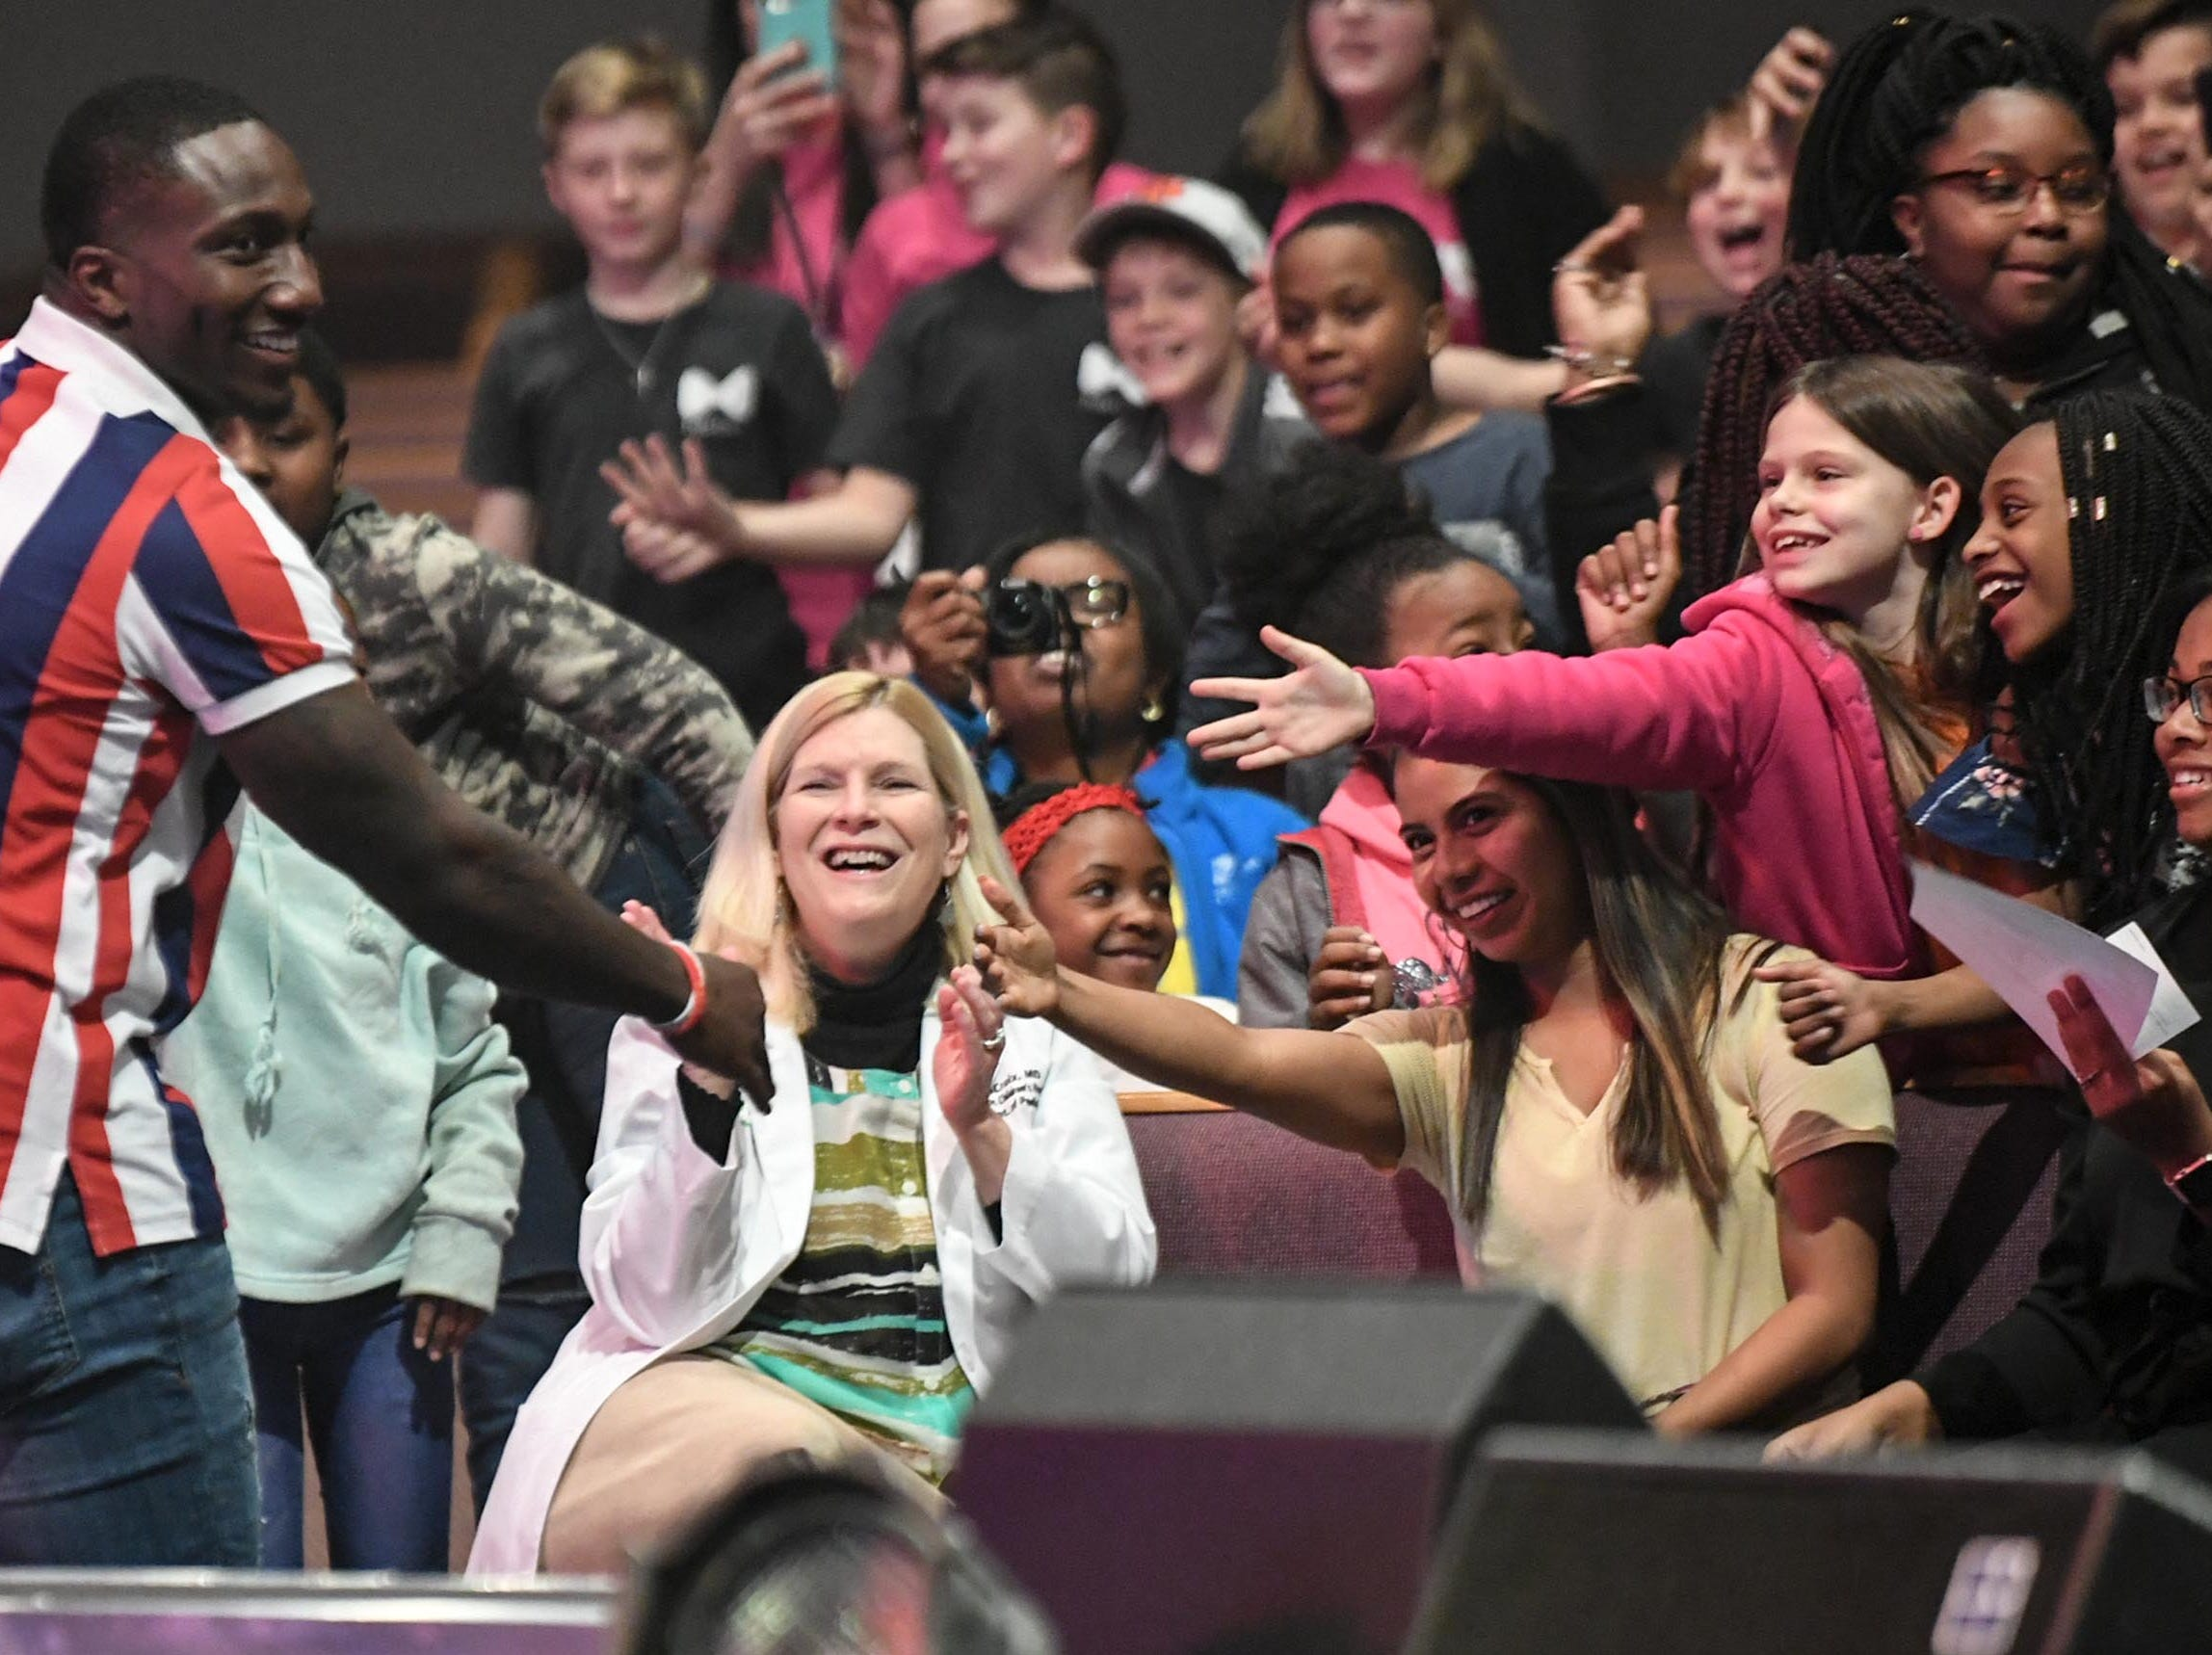 Deebo Samuel, former South Carolina Gamecock football player, greets fans attending  the Coaches 4 Character event at Relentless Church in Greenville Tuesday.